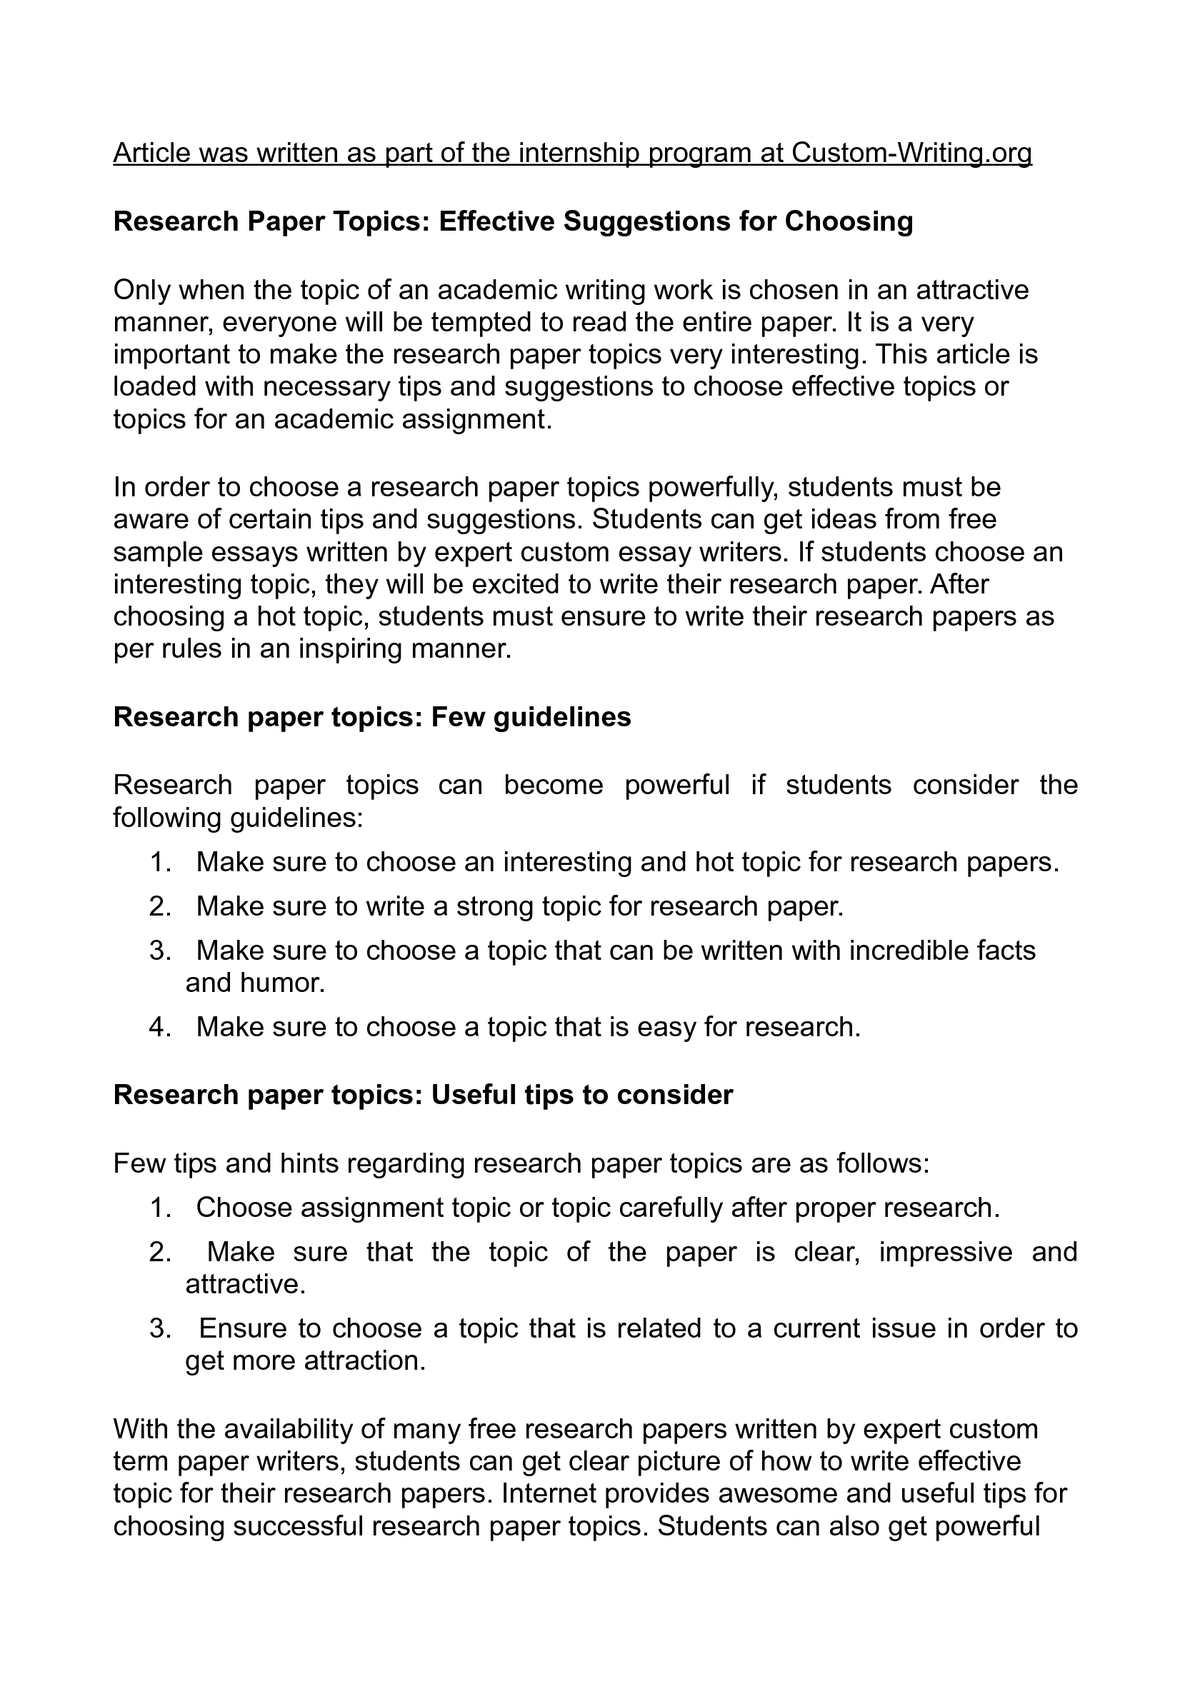 019 Research Paper Topics For Awful Best In Marketing About School Senior High Full